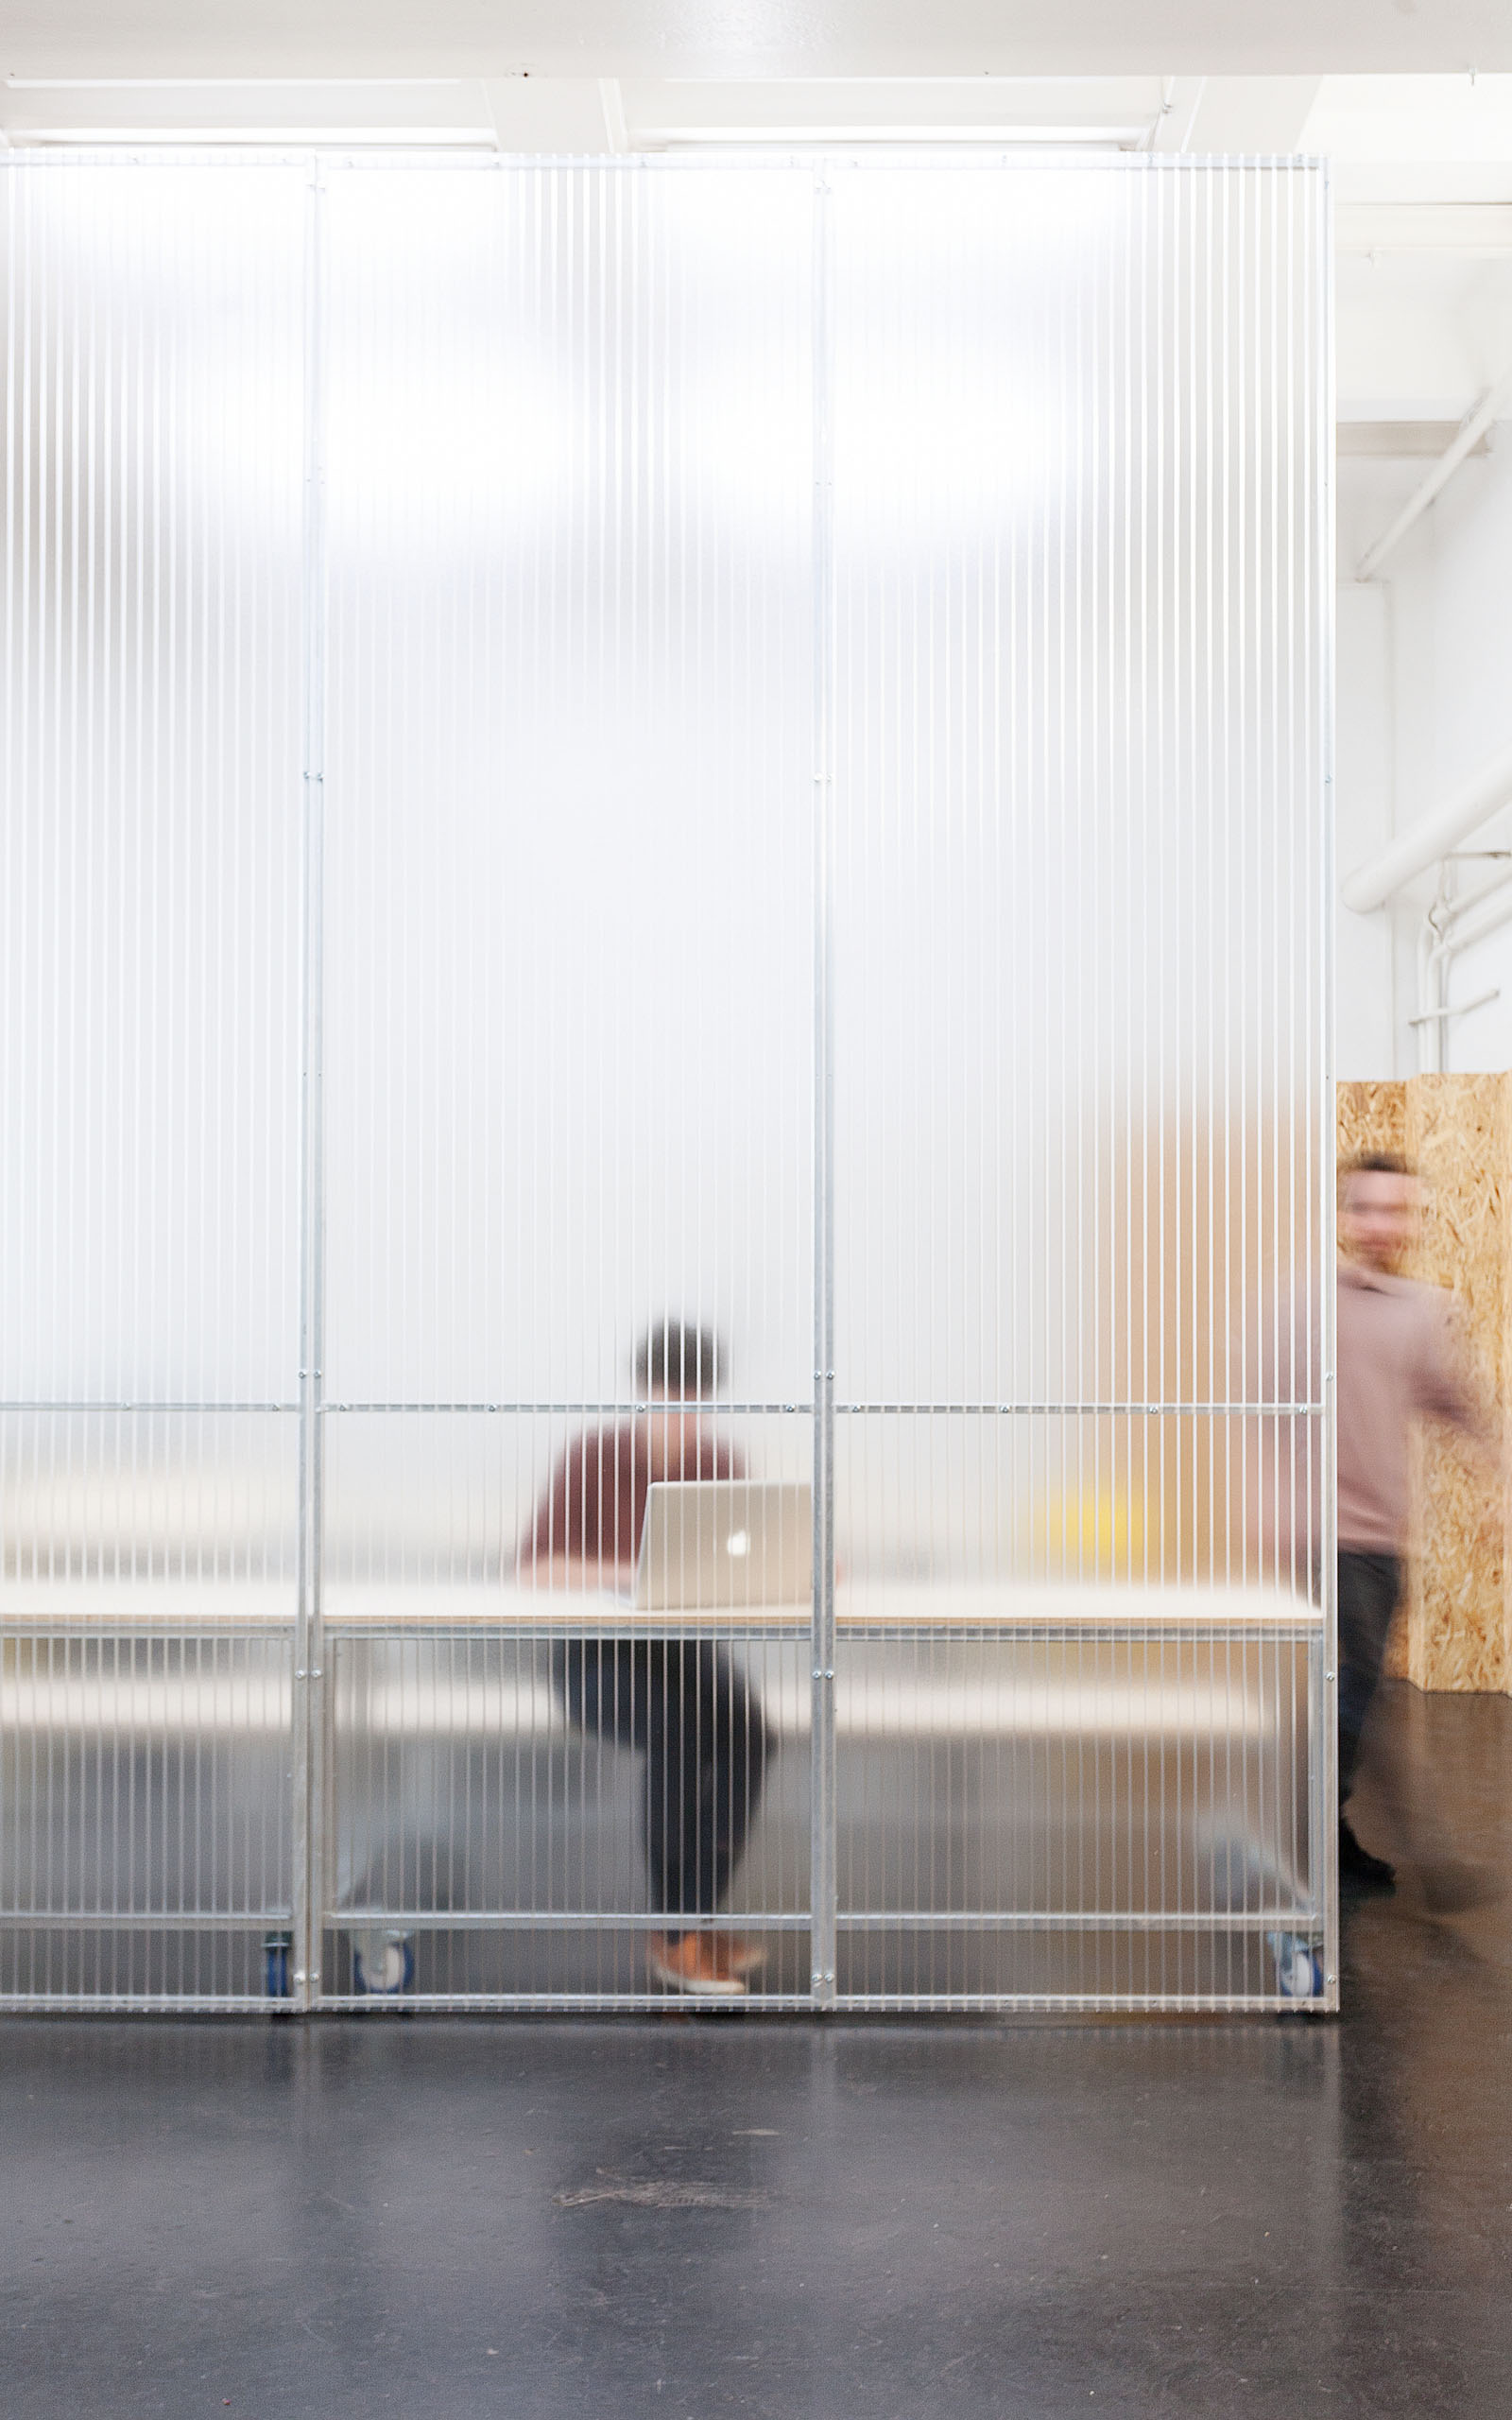 A mobile room divider structure made of translucent material shows the silhouette of a person behind it.